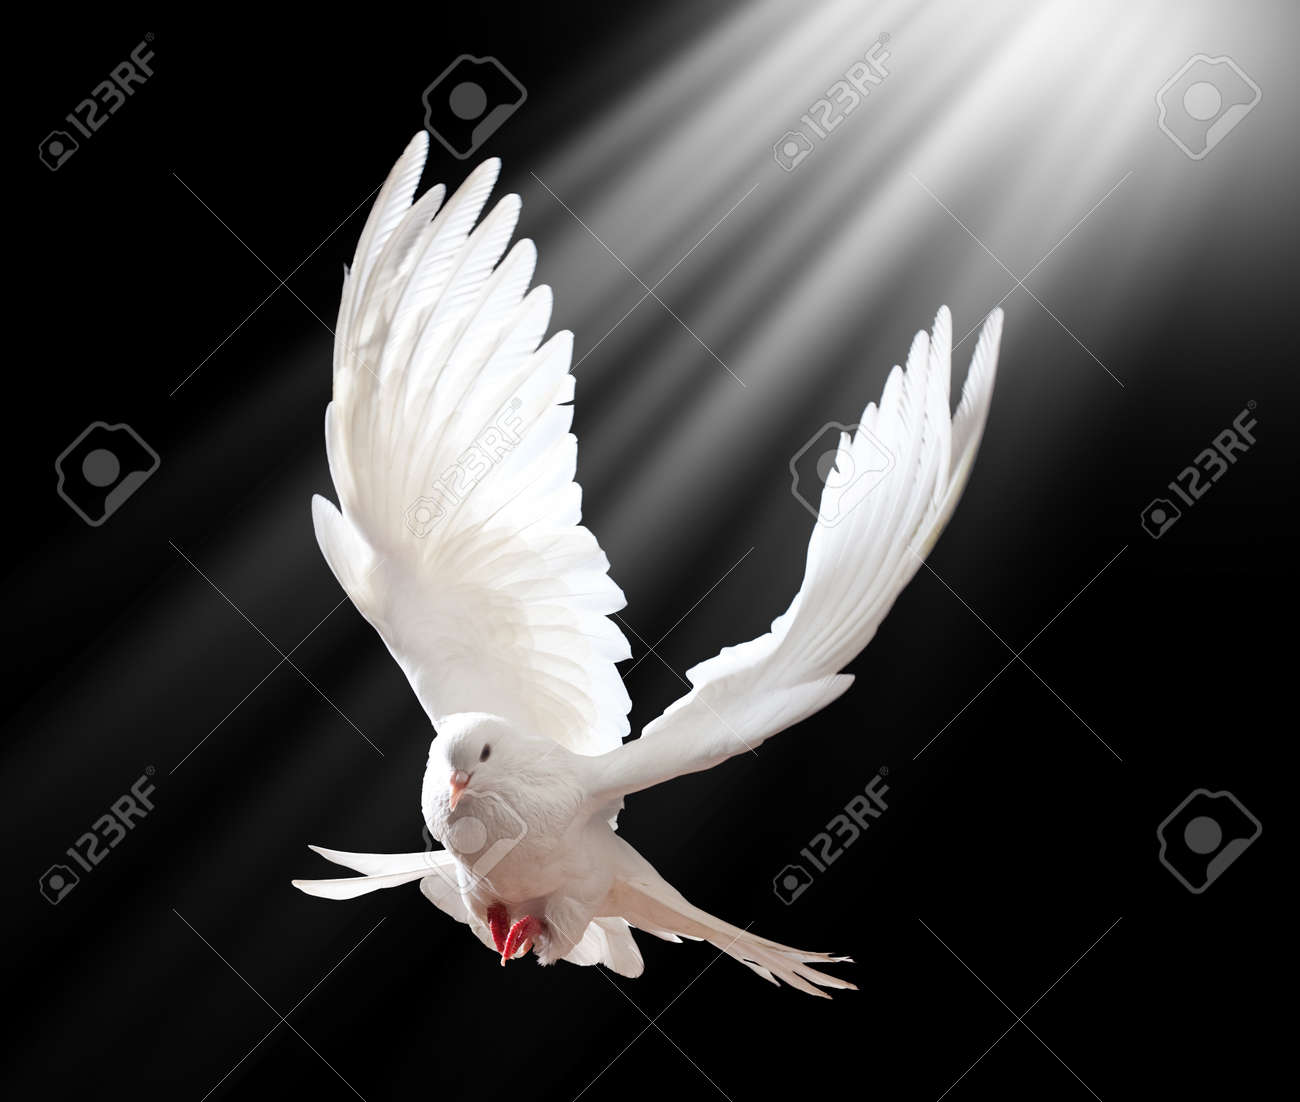 A free flying white dove isolated on a black background - 12568496